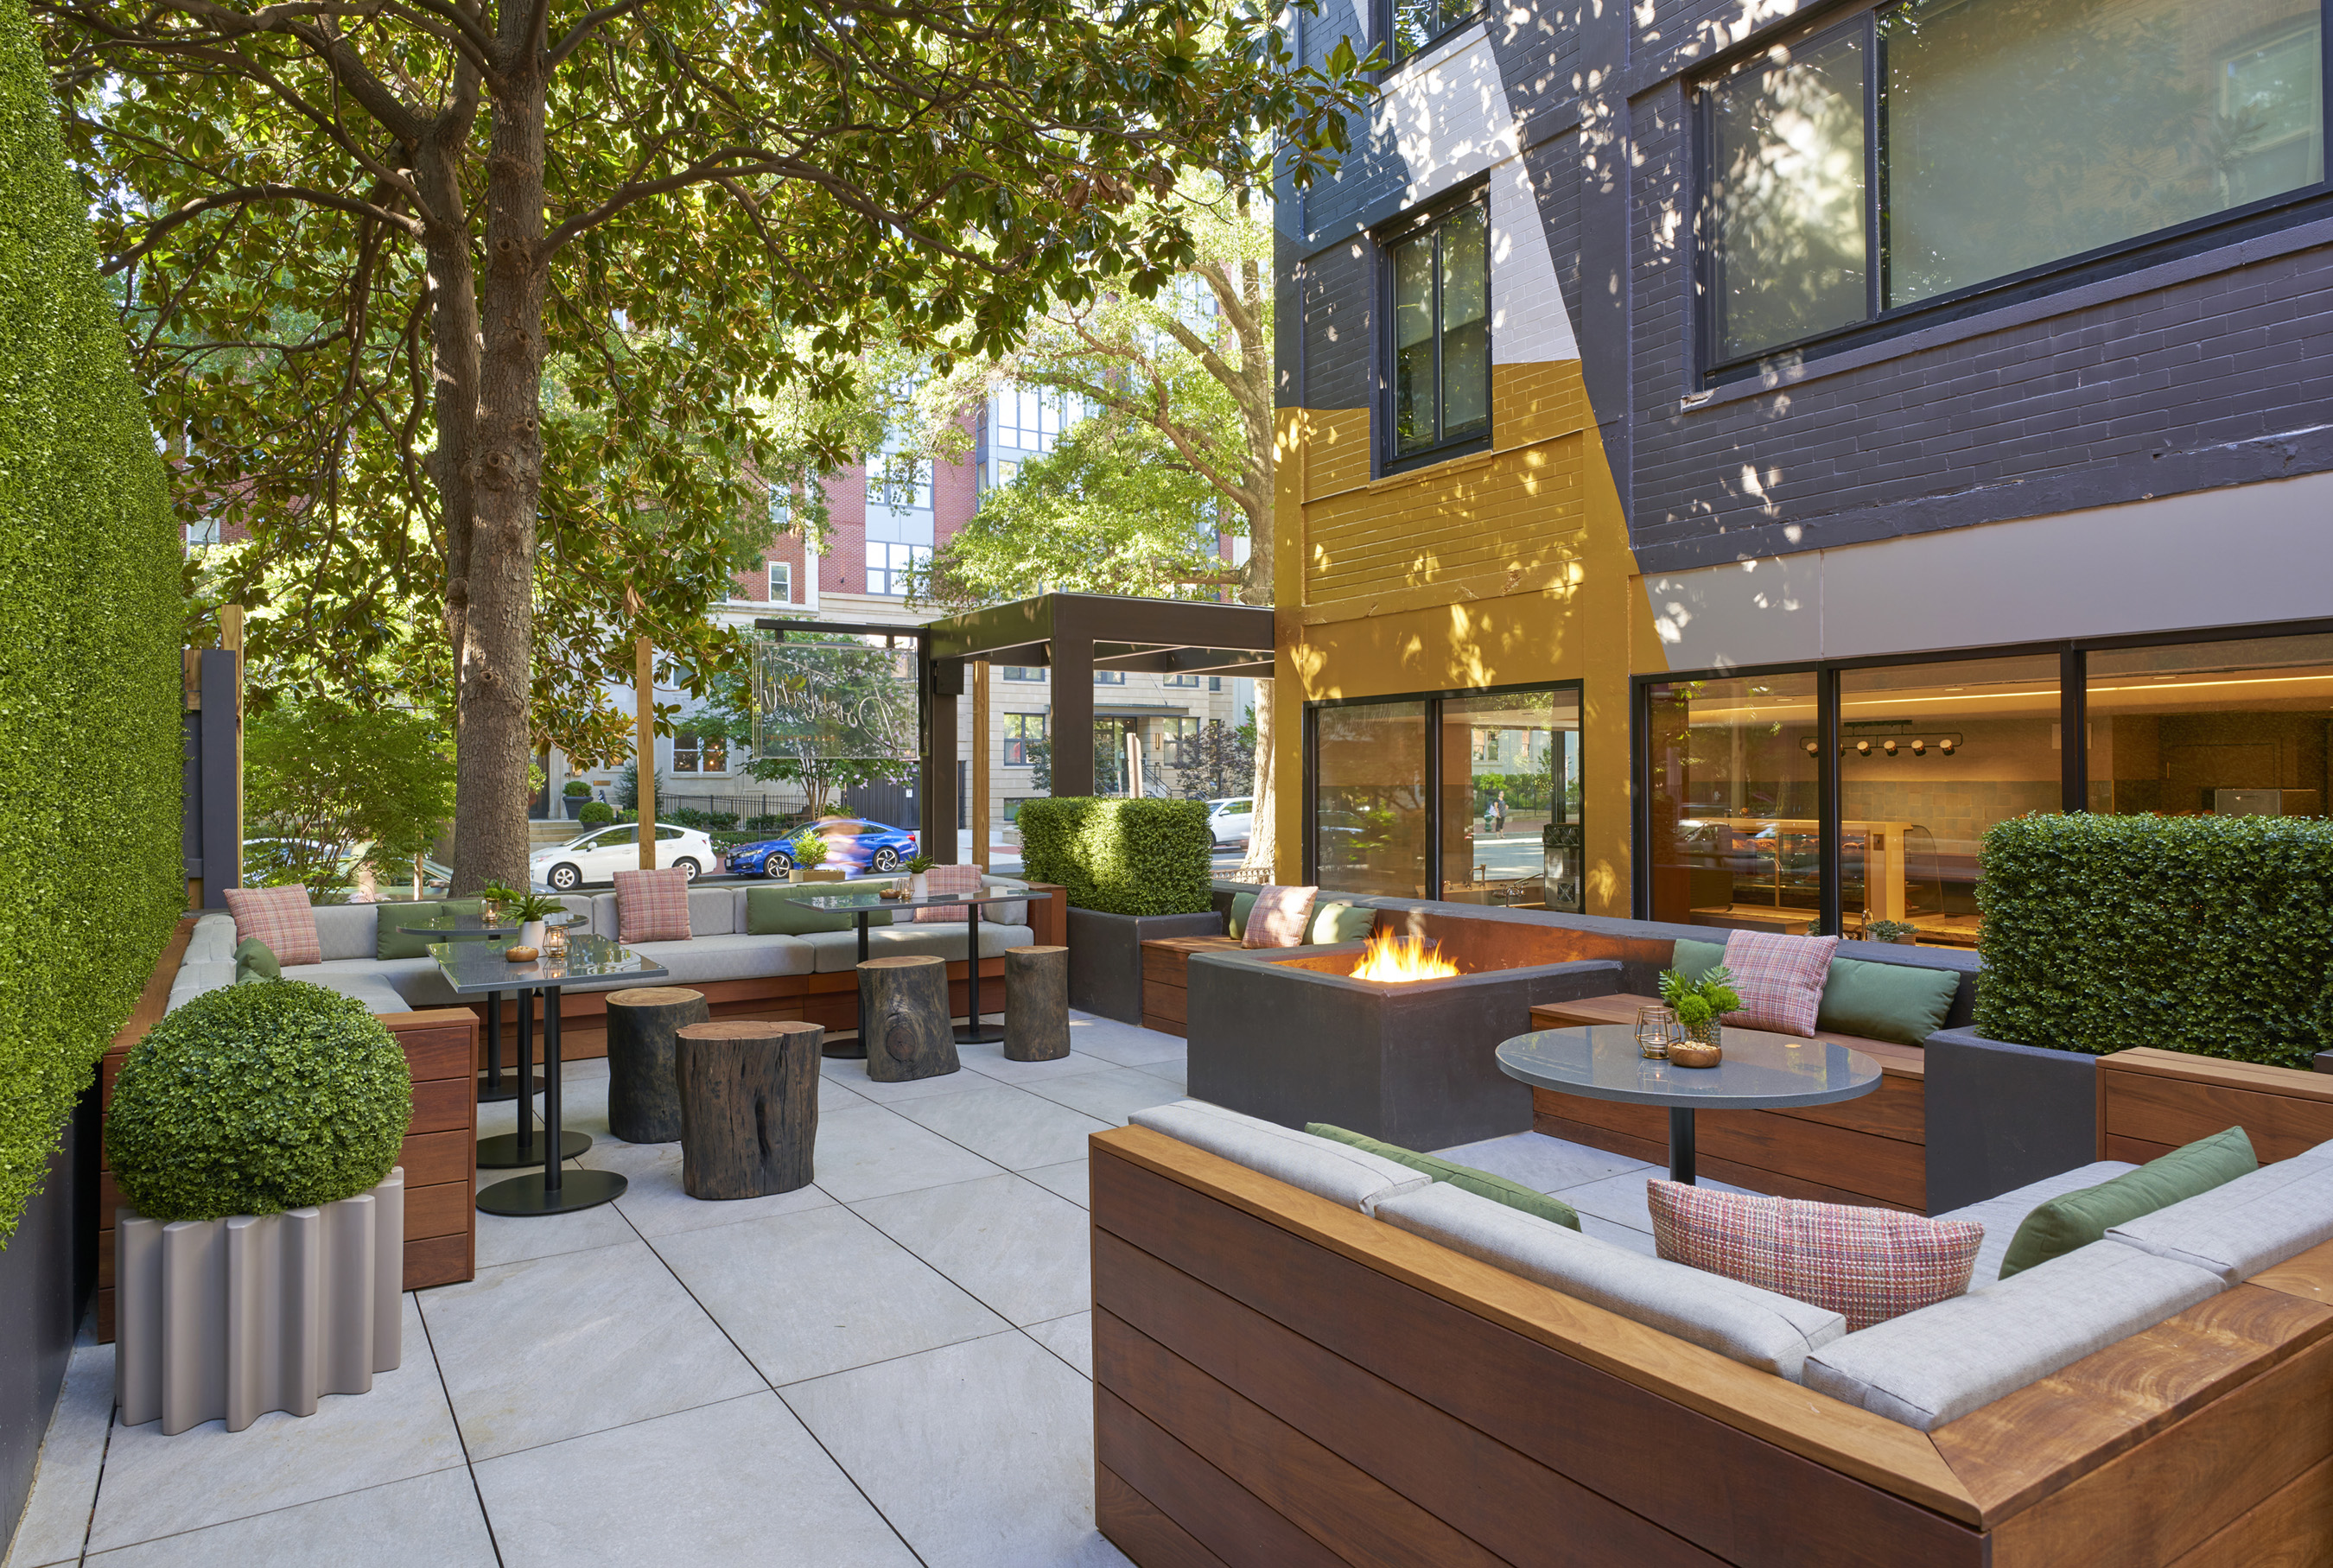 BPM Coffee & Wine offers an expansive, year-round patio. Photo Credit: Mike Schwartz Photography